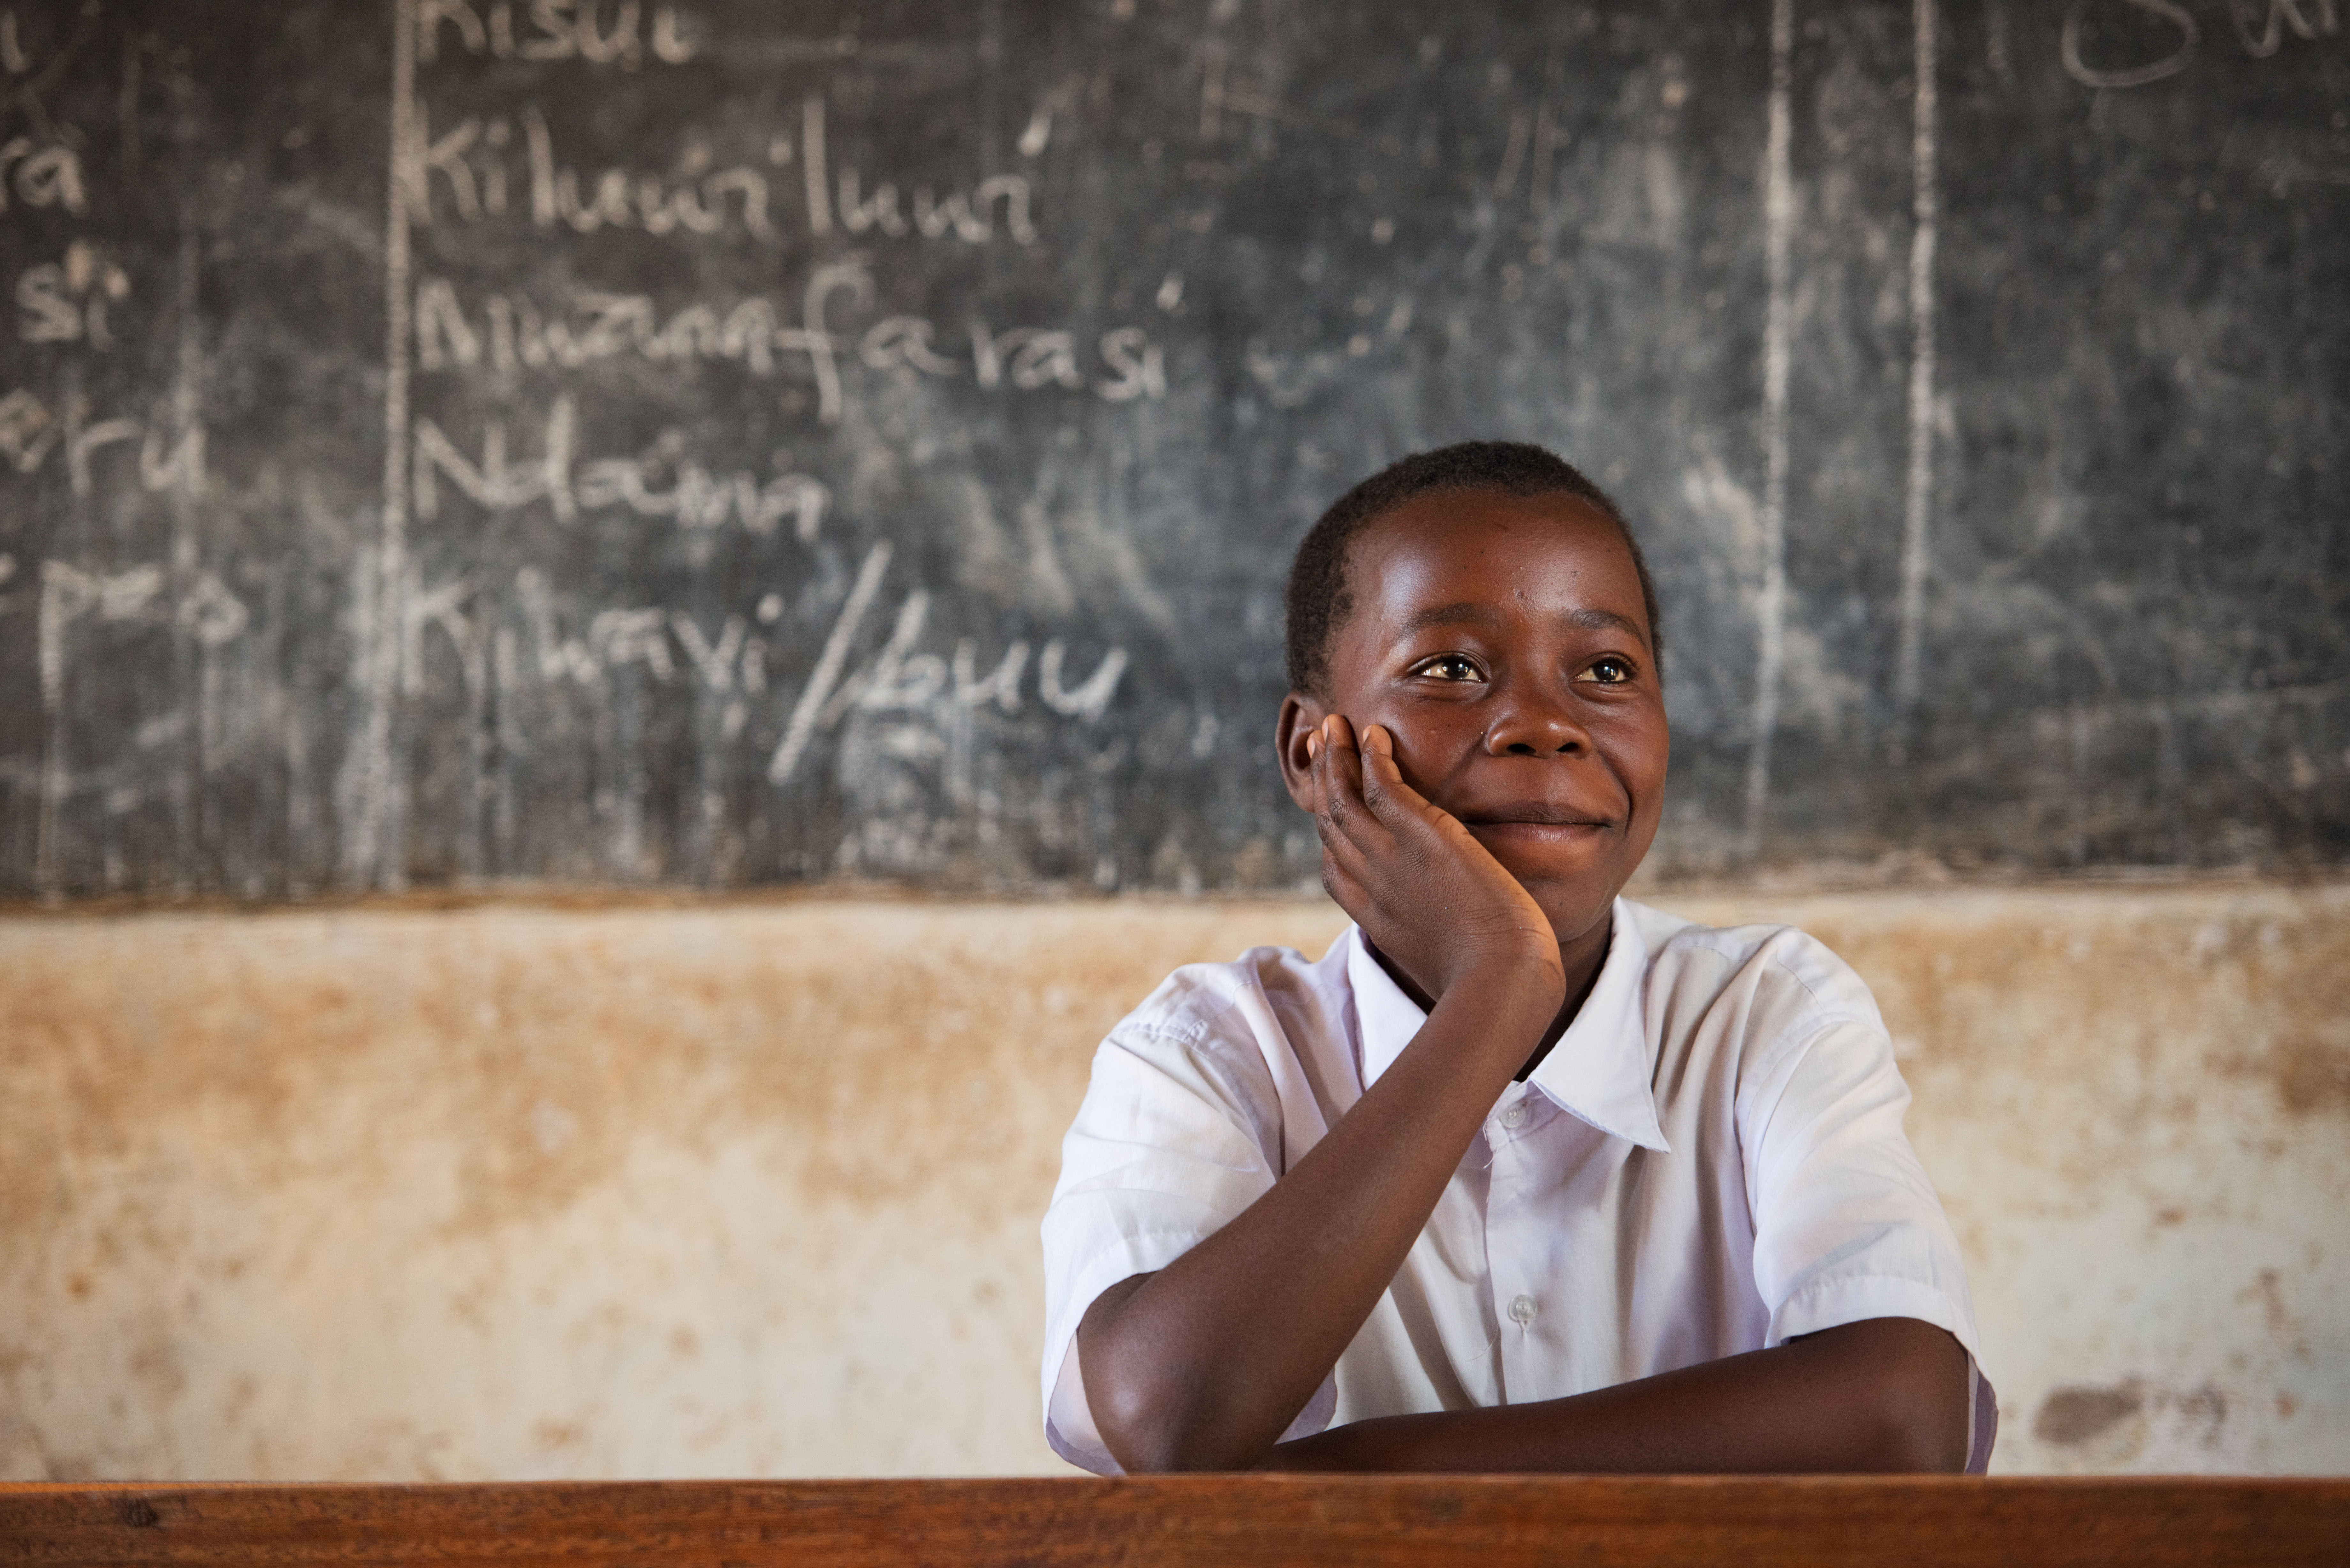 The moment President Obama responded to 15-year old Eva from Tanzania's letter